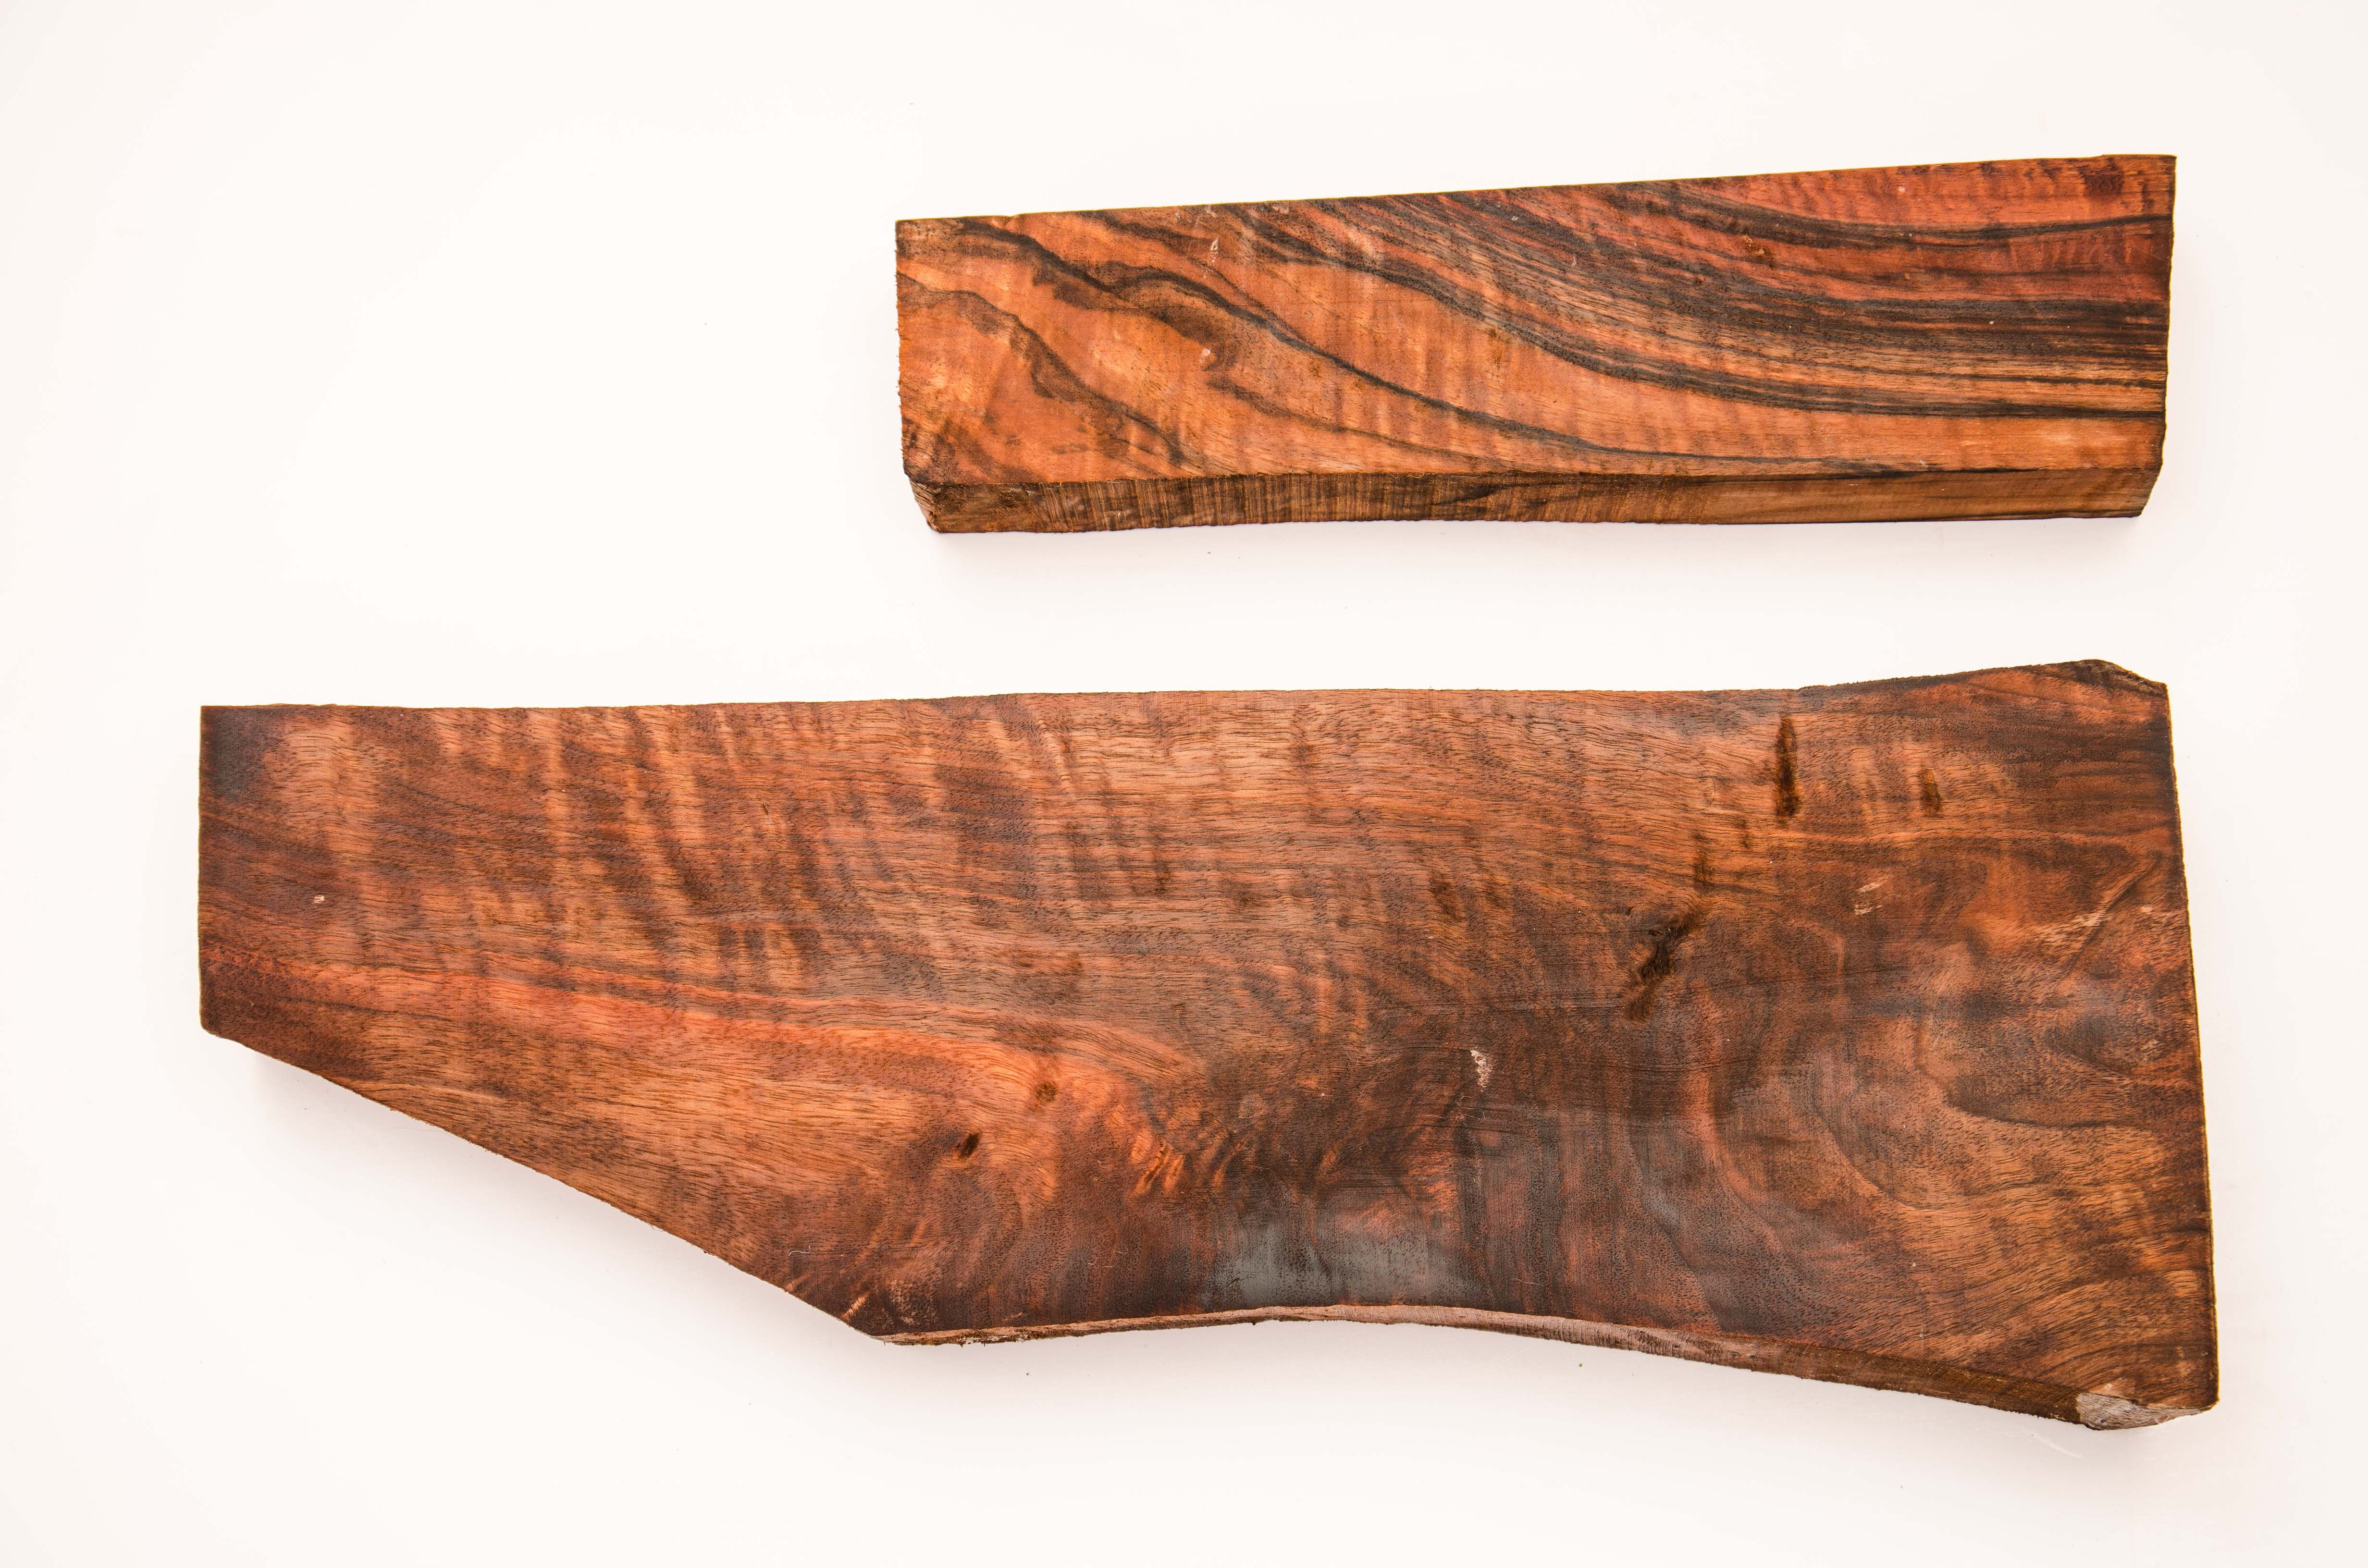 walnut_stock_blanks_for_guns_and_rifles-0581